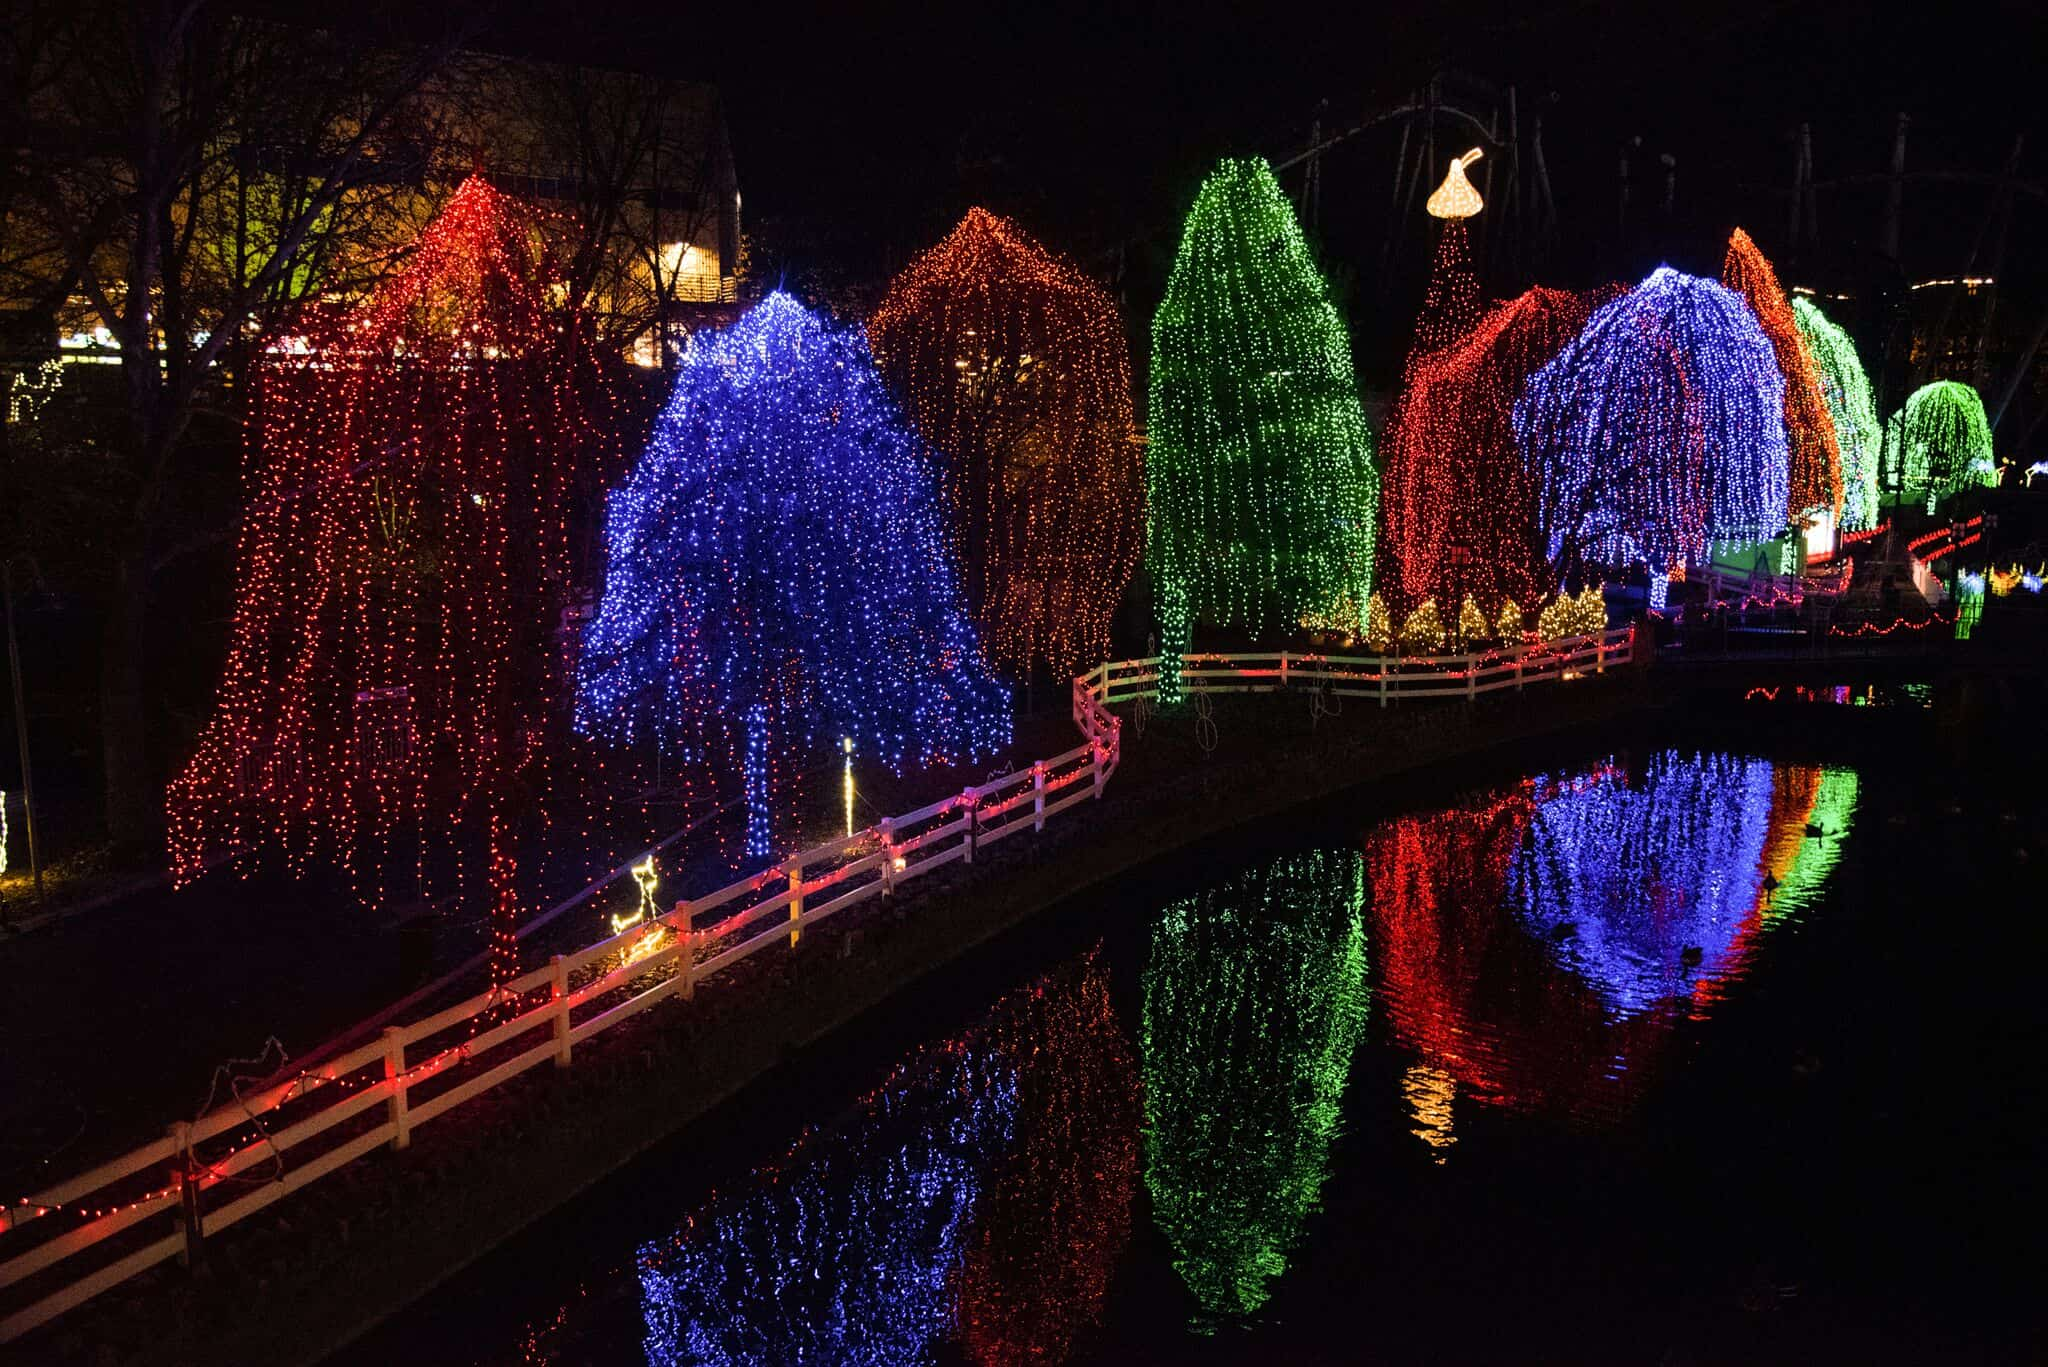 12 Things to See at Hersheypark Christmas Candyland - Feels Like Home™